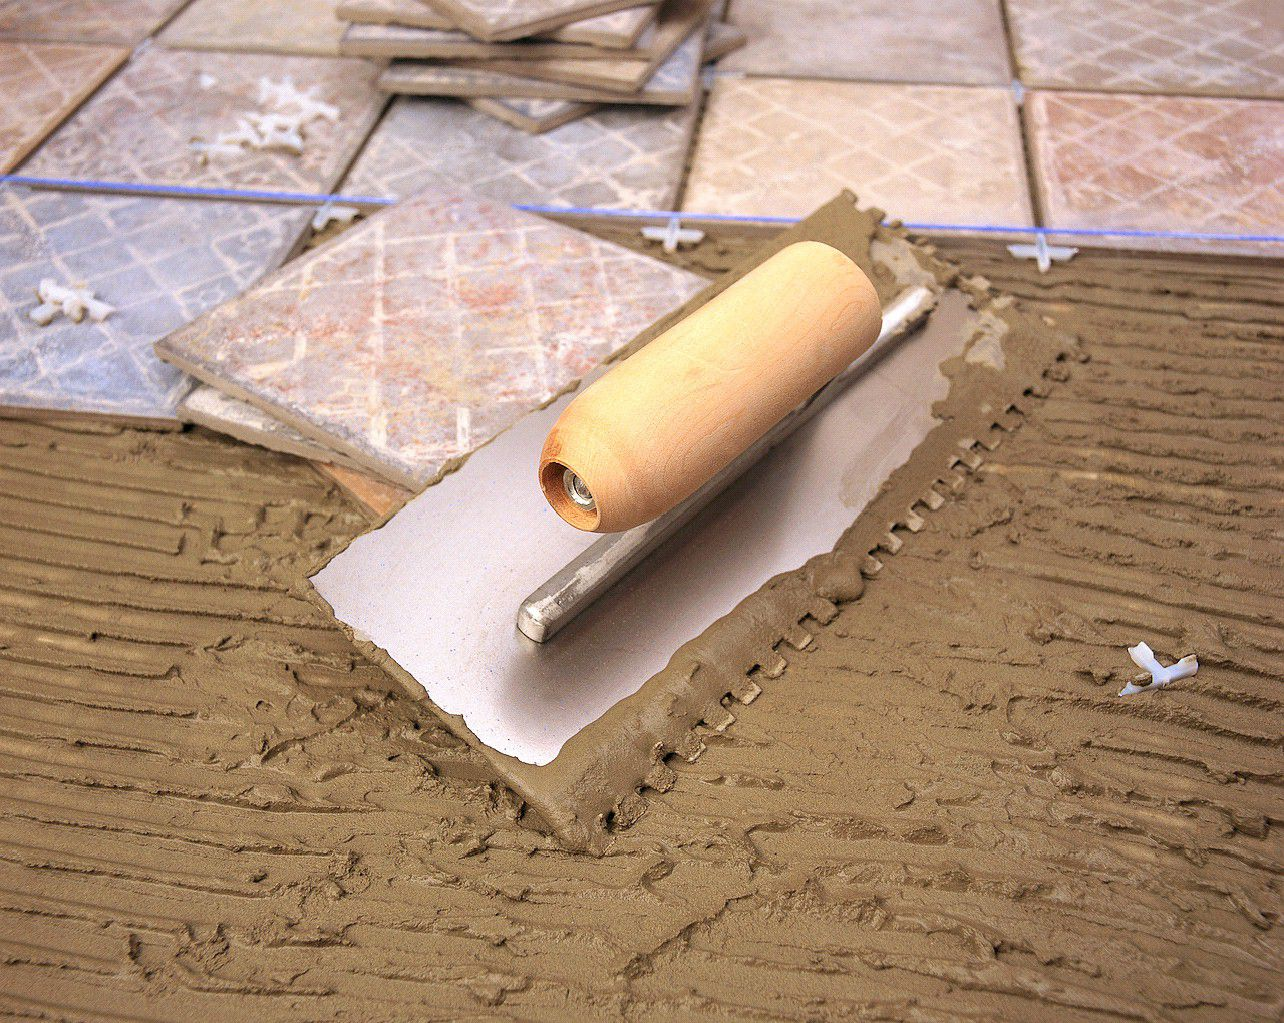 Learn how to install wall tiles how to prep mix mortar layout grout and install floor tiles dailygadgetfo Image collections